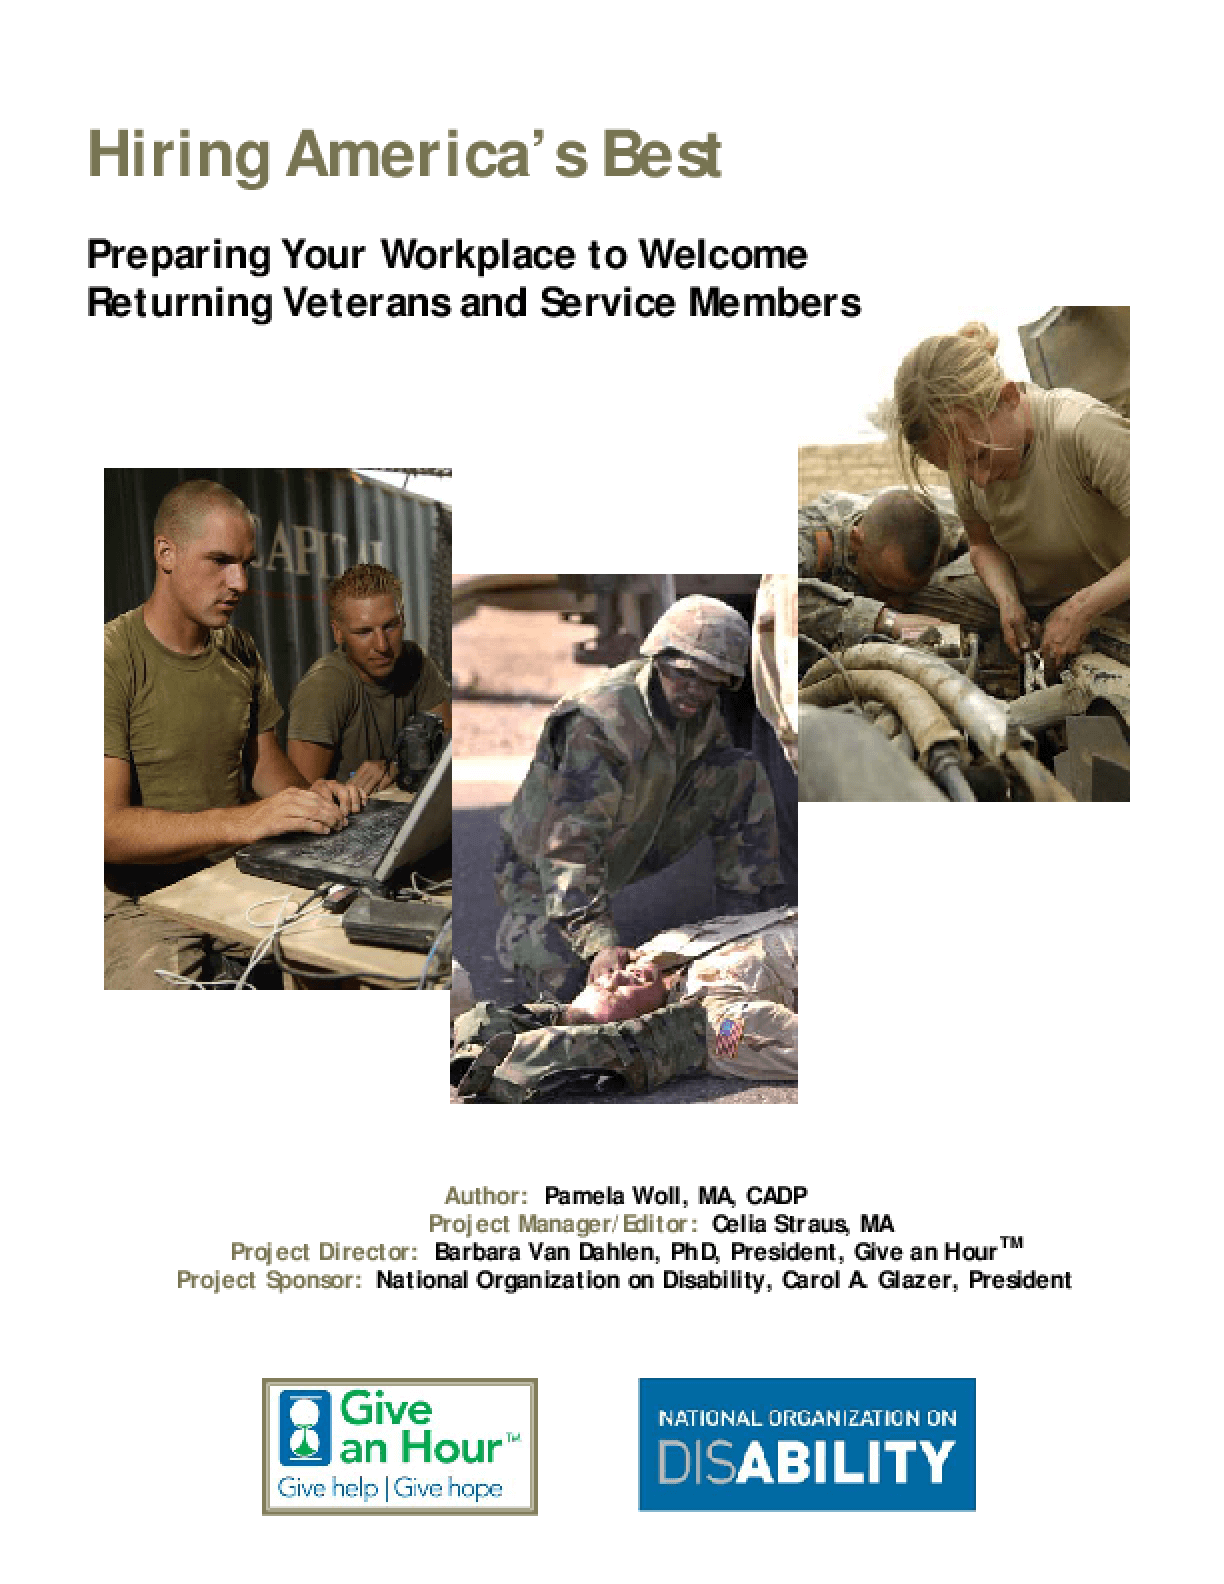 Hiring America's Best: Preparing Your Workplace to Welcome Returning Veterans and Service Members